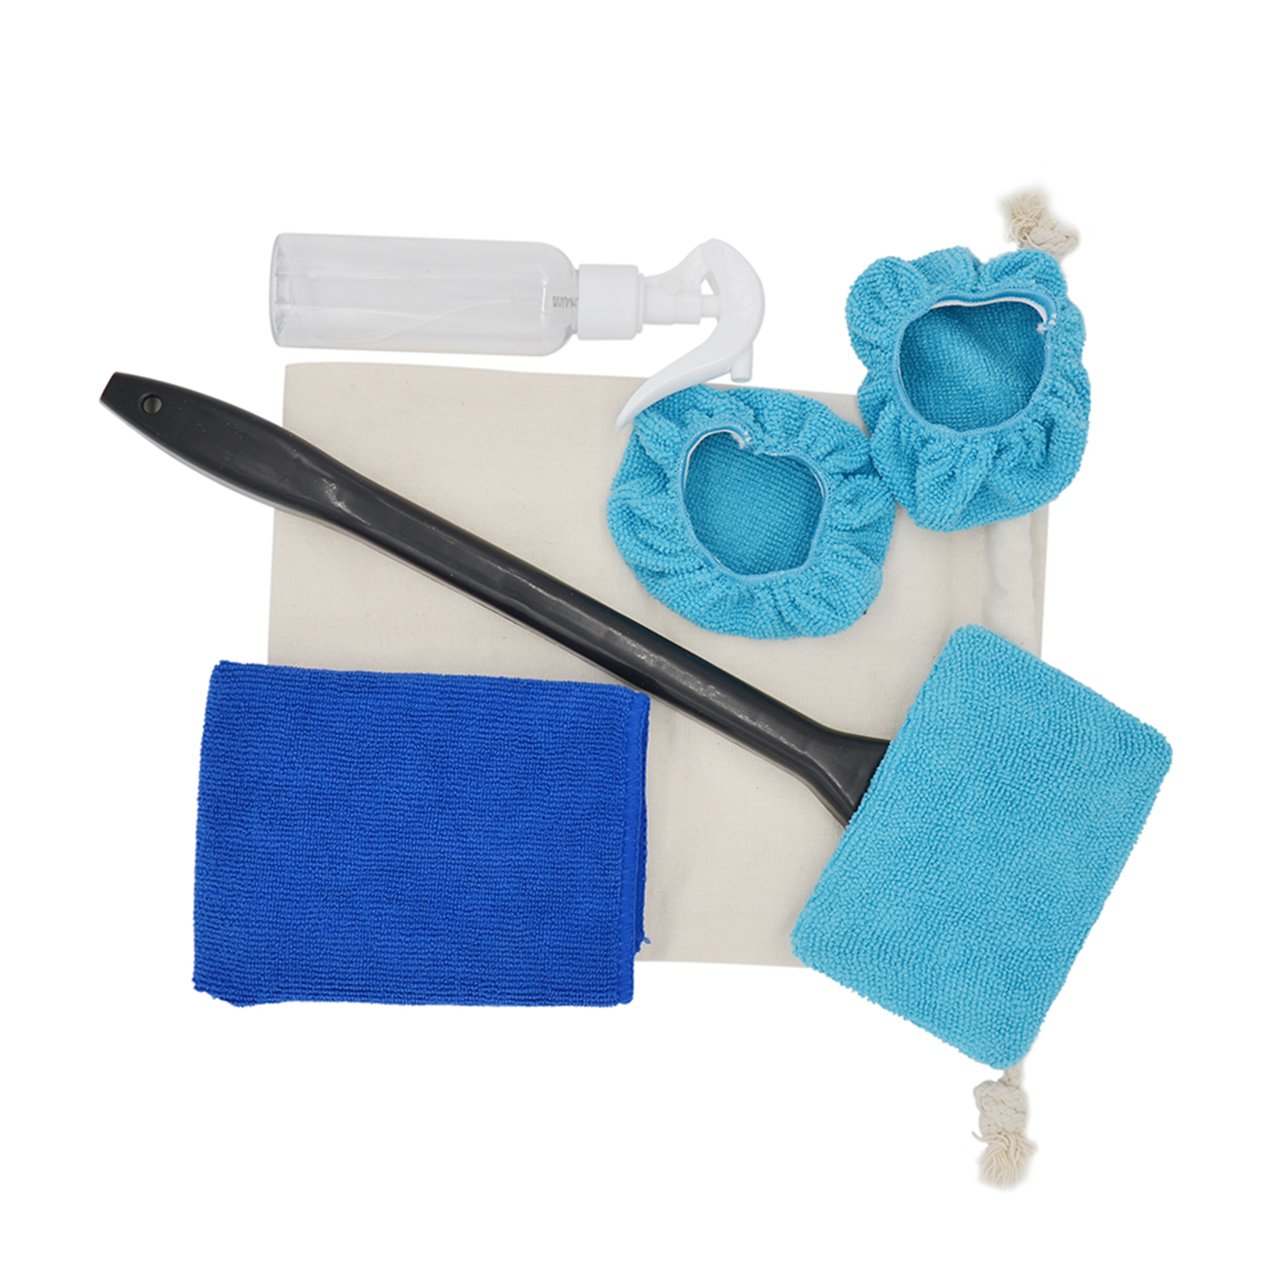 Rectangle Car Windshield Cleaner Auto Glass Wiper with Washable Microfiber Wipes Cleaning Cloth Canvas Storage Pouch 100ML Empty Spray Bottle Set of 5